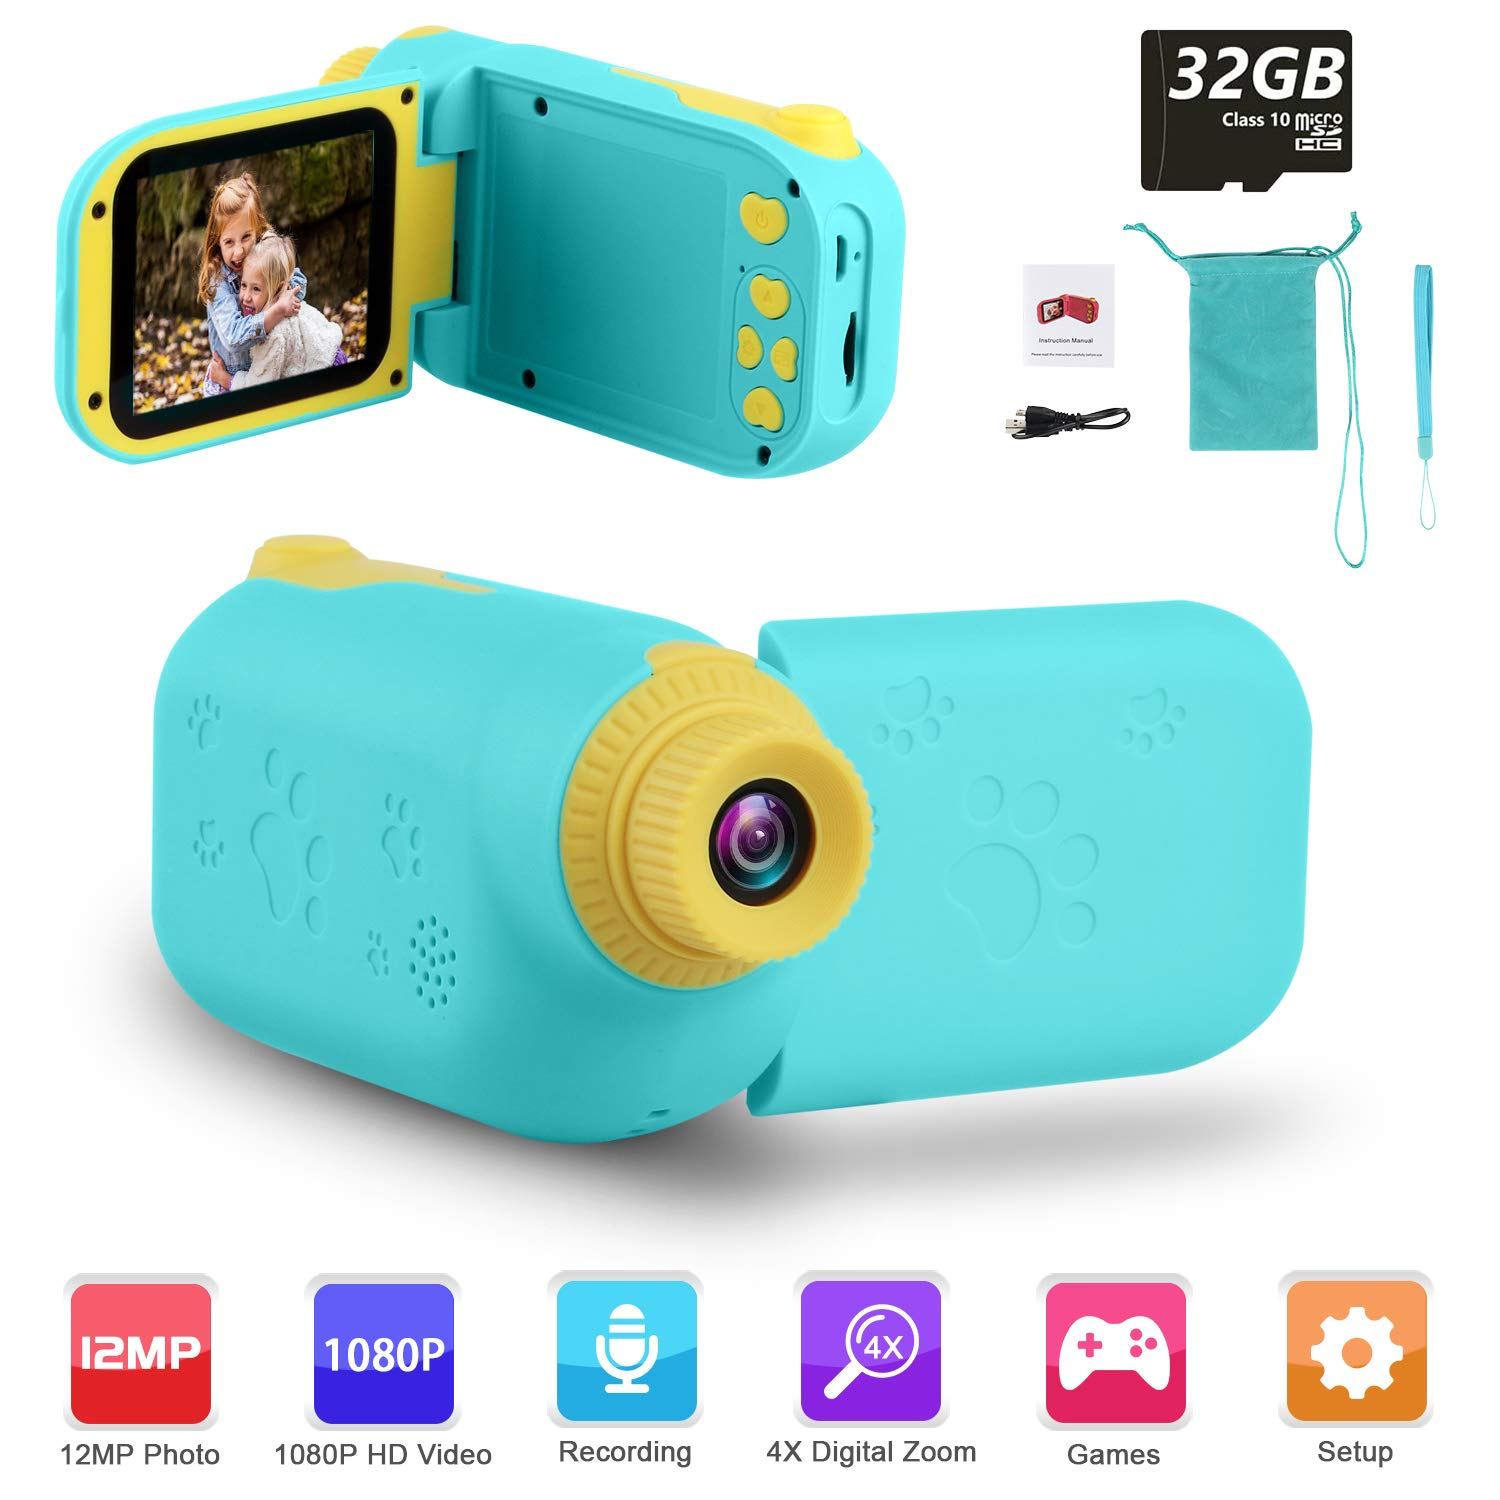 """GKTZ Video Camera Camcorder Digital for Kids, Children's Toys DV Cameras Recorder with 2.4"""" 1080P FHD Screen for Age 3 -10 Year Old Boys Girls Birthday Gifts ,Including 32GB SD Card - Blue"""